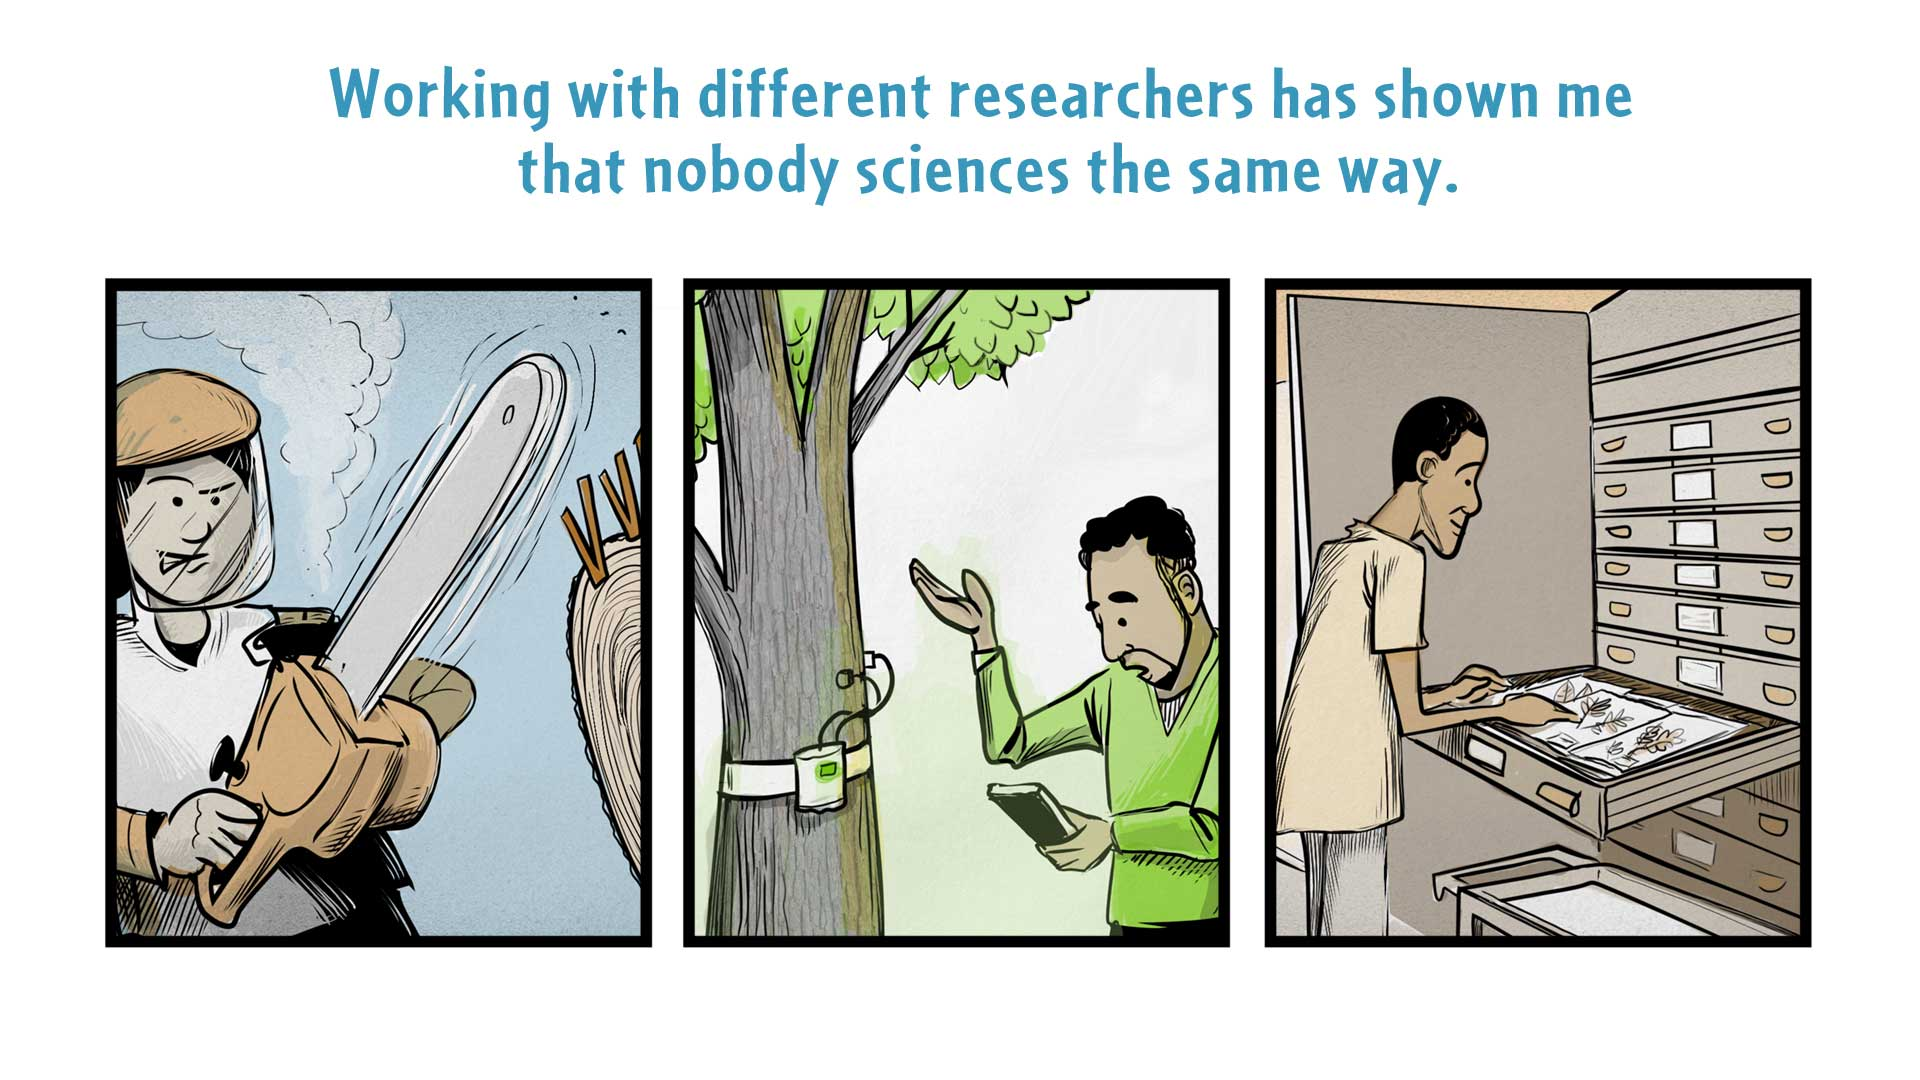 "Chloe, the narrator says, ""Working with different researchers has shown me that nobody sciences the same way."" On the left, a woman uses a chainsaw. In the middle, a man uses a device to measure a tree. On the right, a man stands at a large file cabinet, looking at dried plant specimens."